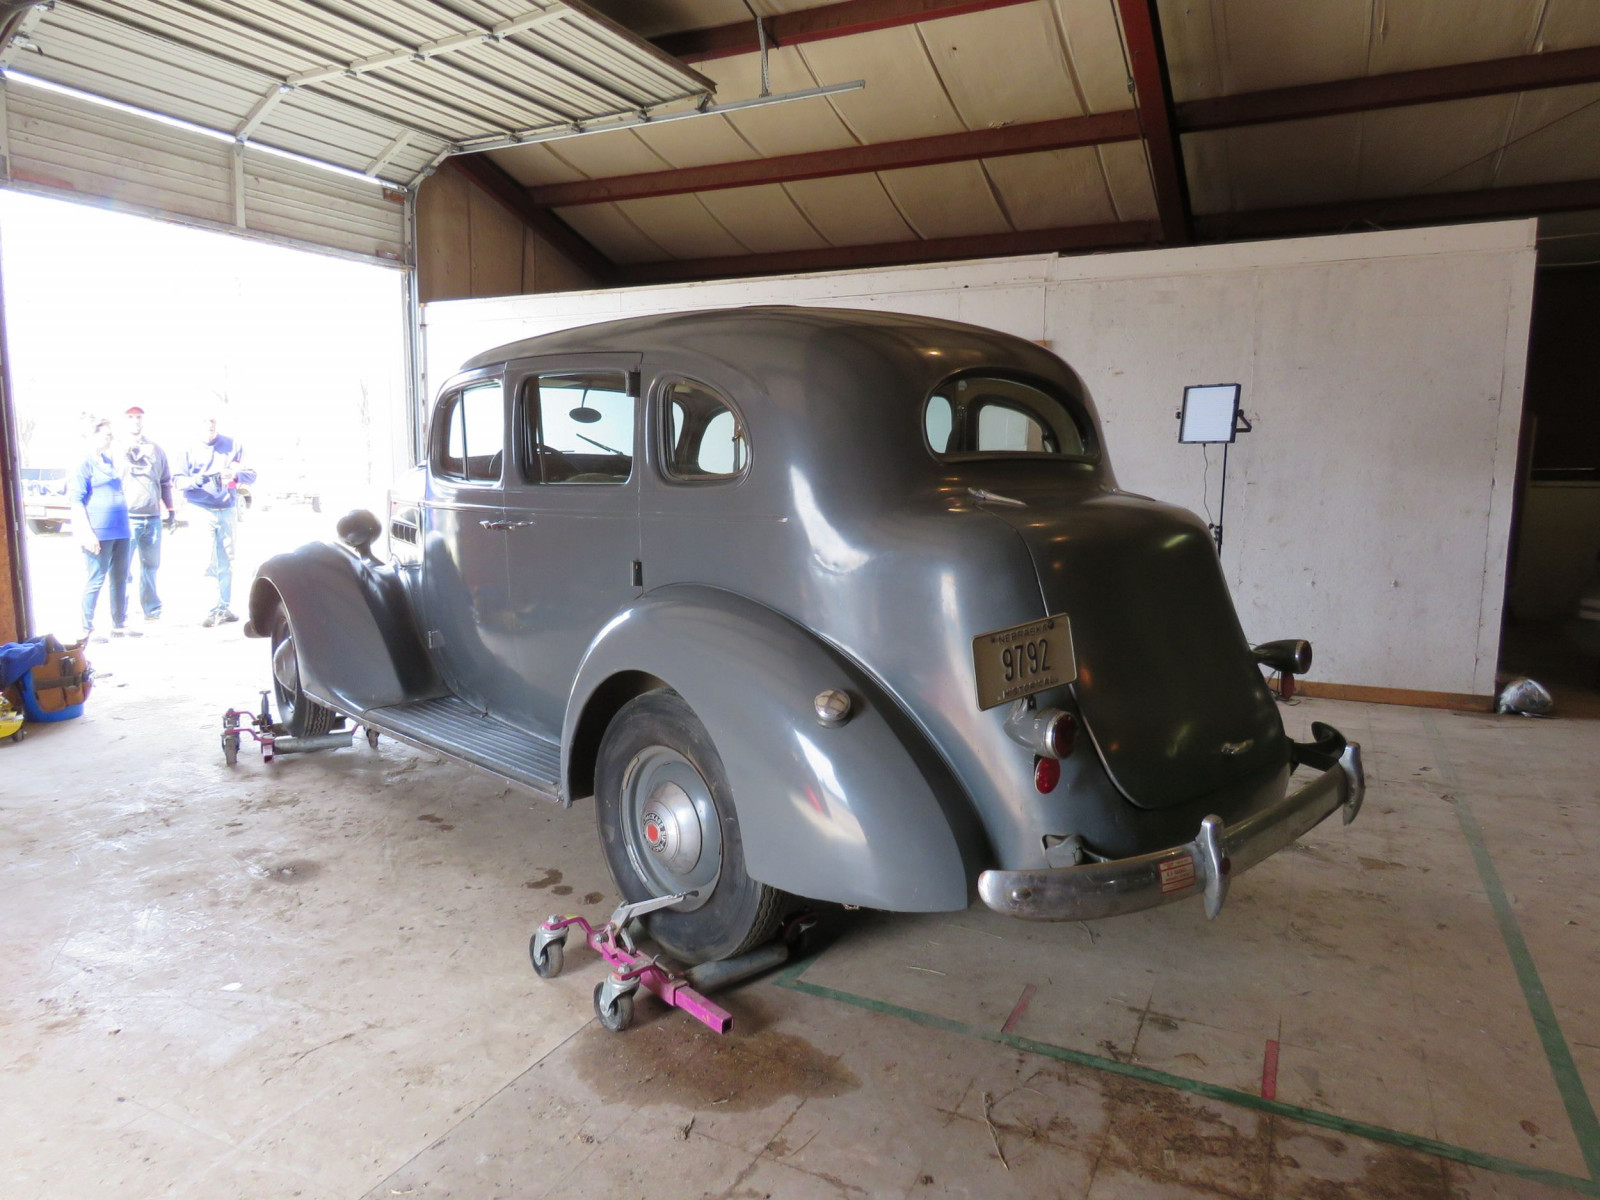 1937 Packard 6 4dr Suicide Sedan - Image 3